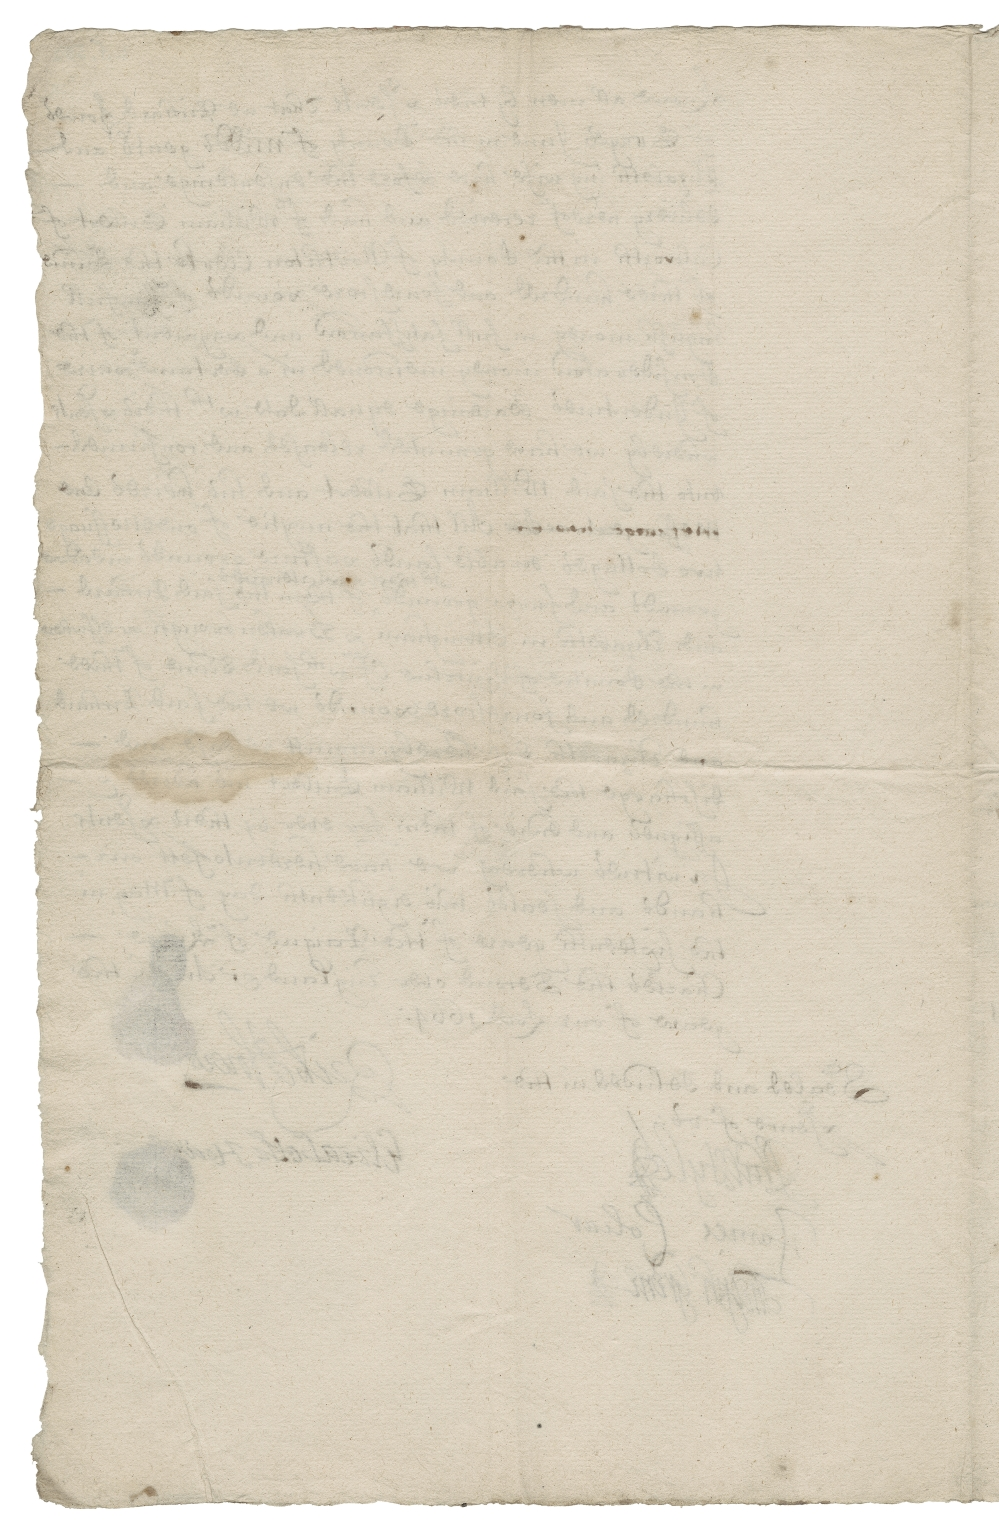 Acquittance from Richard Howes of Gray's Inn, Middlesex, and Elizabeth Howes to William Gilbert of Culworth, Northamptonshire